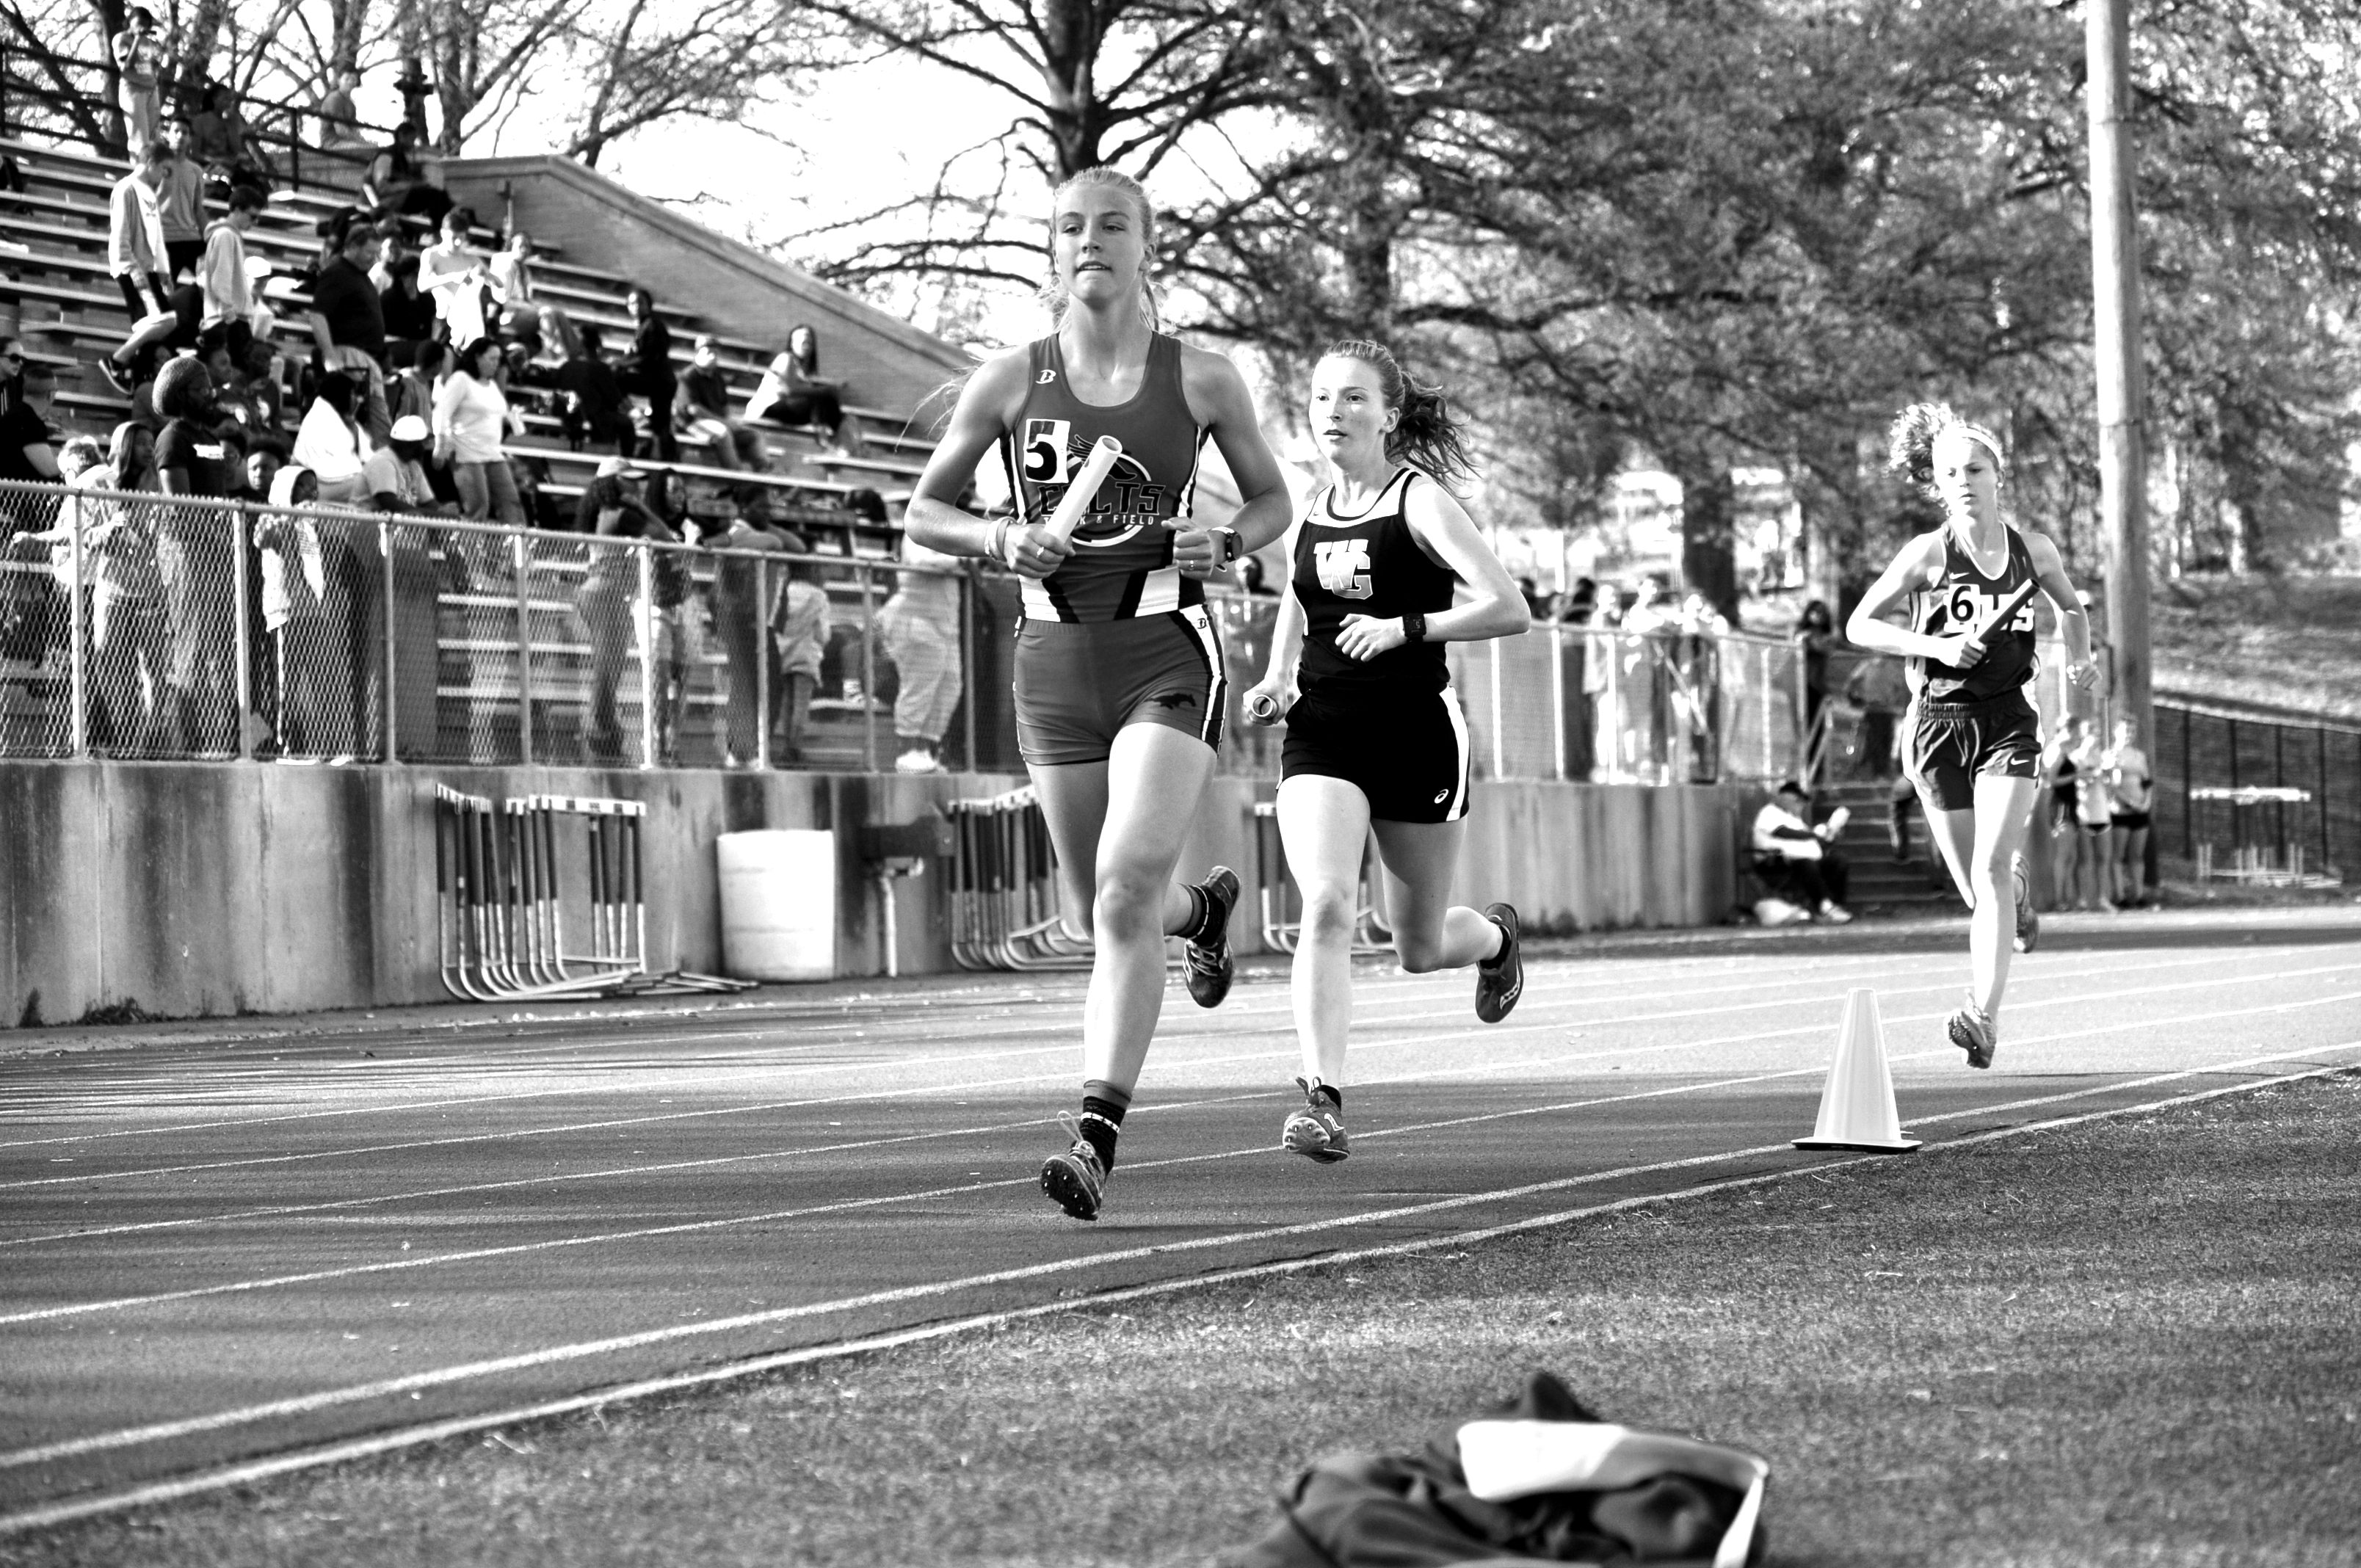 Senior Richelle Bain finishes her leg of the varsity 4x800-meter relay at the Henle Holmes meet at home on April 12. Photo by Madeline Lee